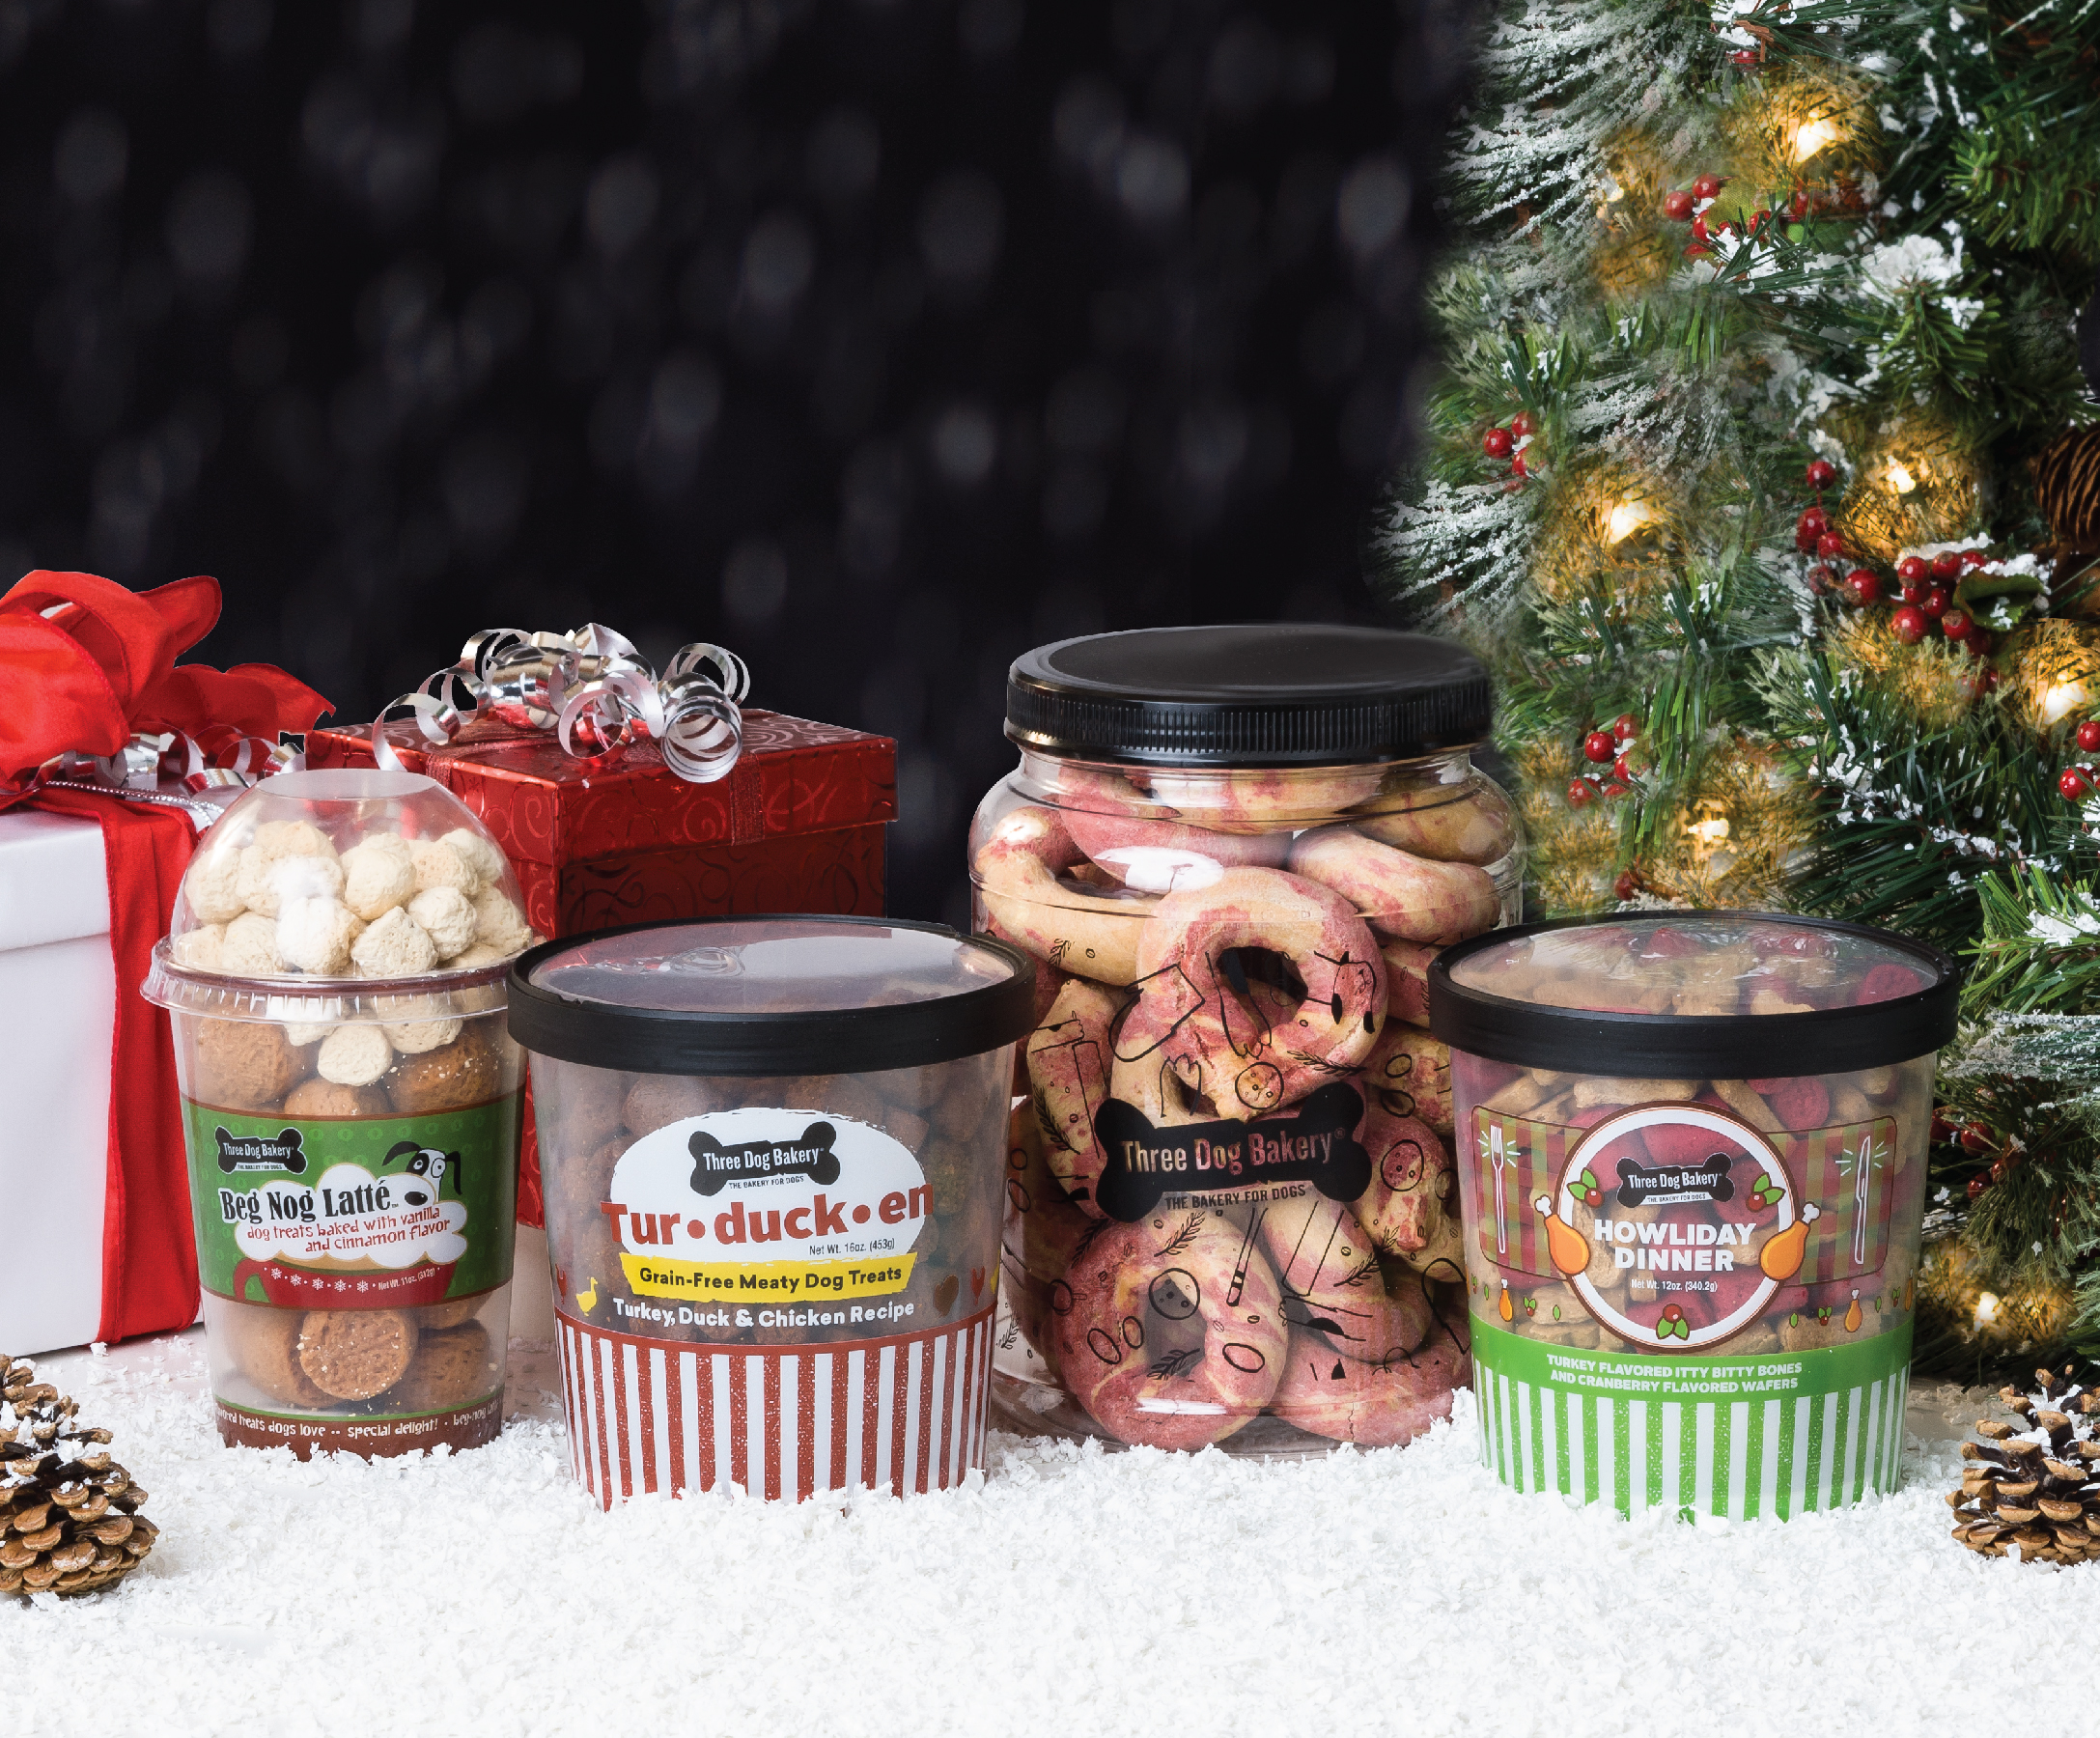 HolidayProduct2018-01 copy